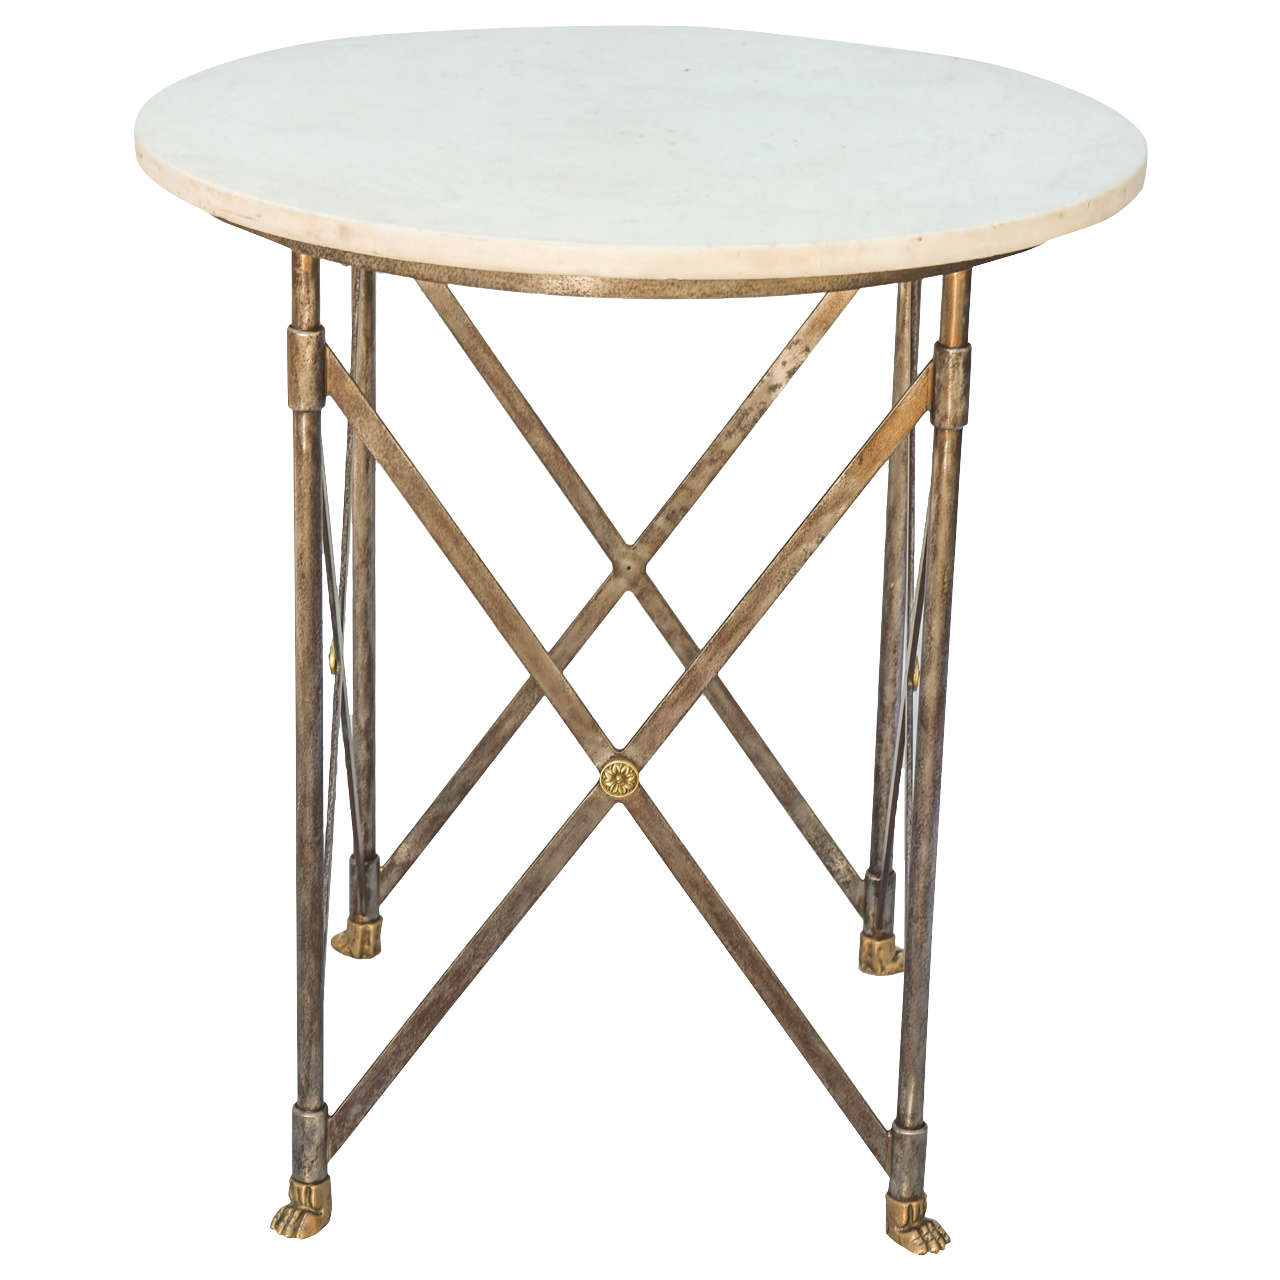 Neoclassical iron table with marble top for sale at 1stdibs for Marble table tops for sale